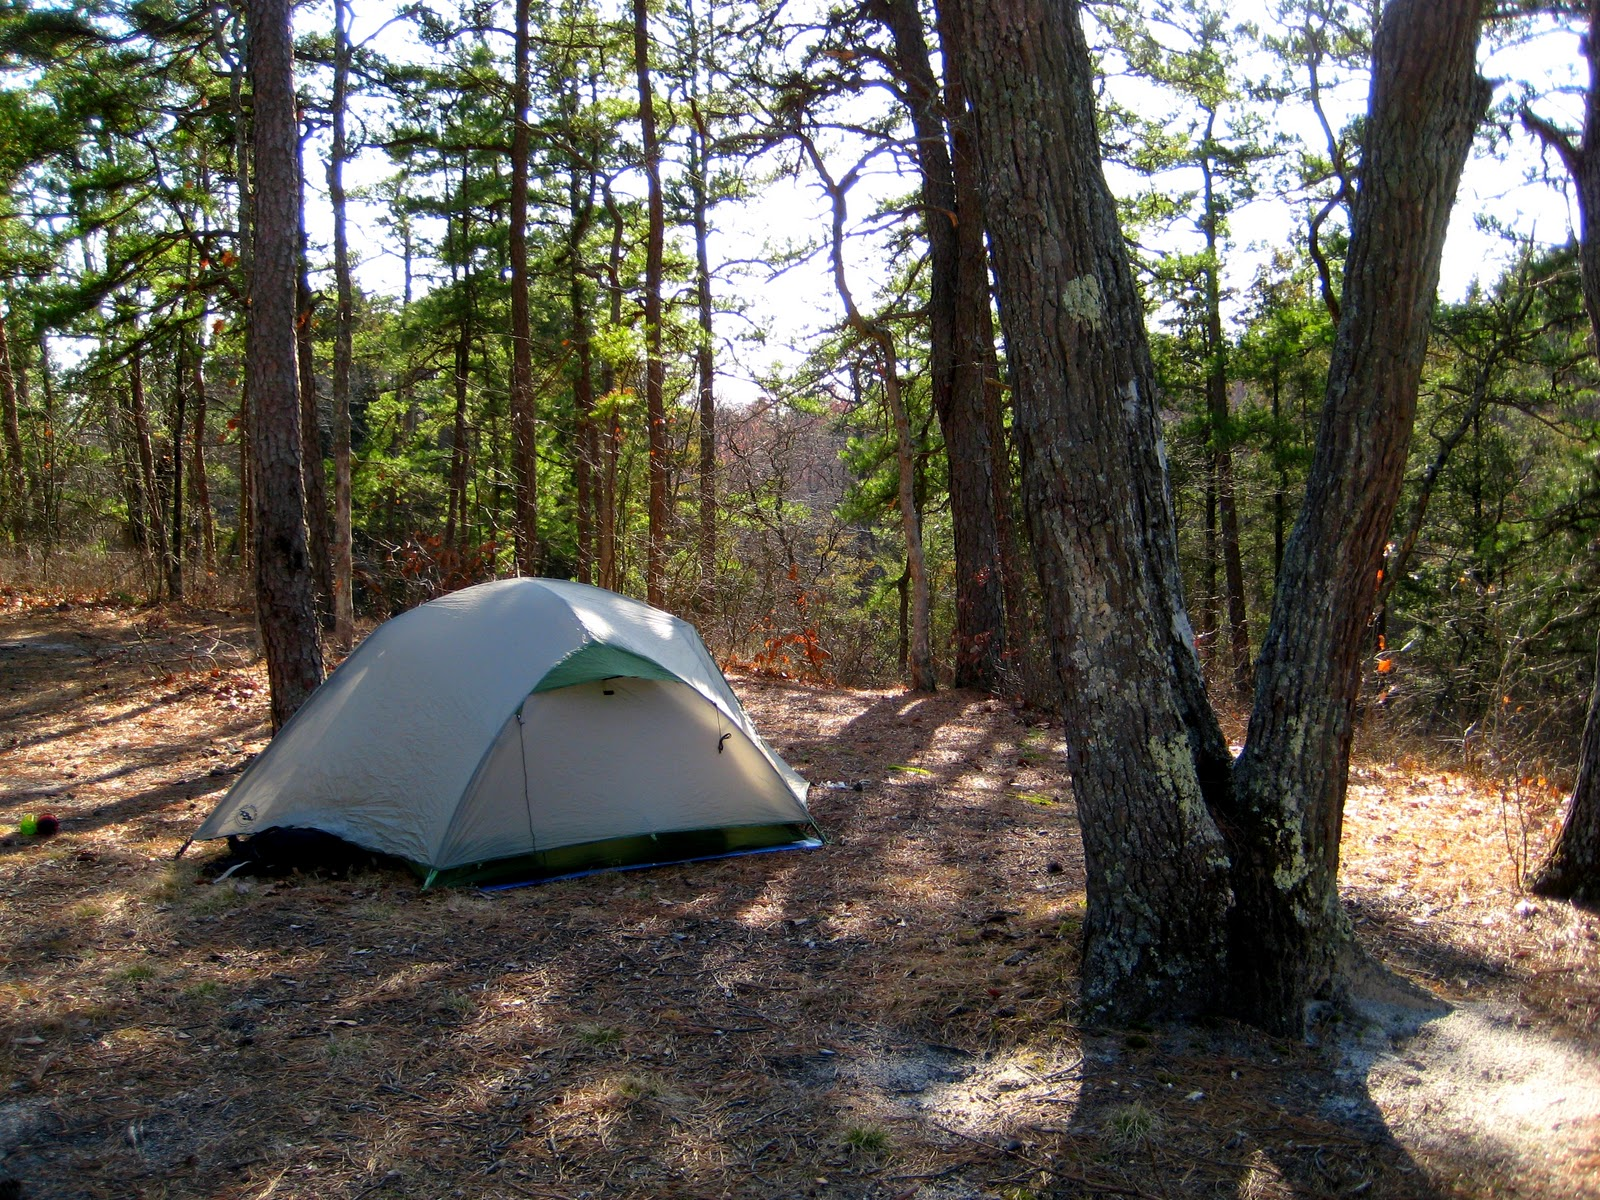 Camping courtesy nine behaviors to avoid in public for Wharton state forest cabins